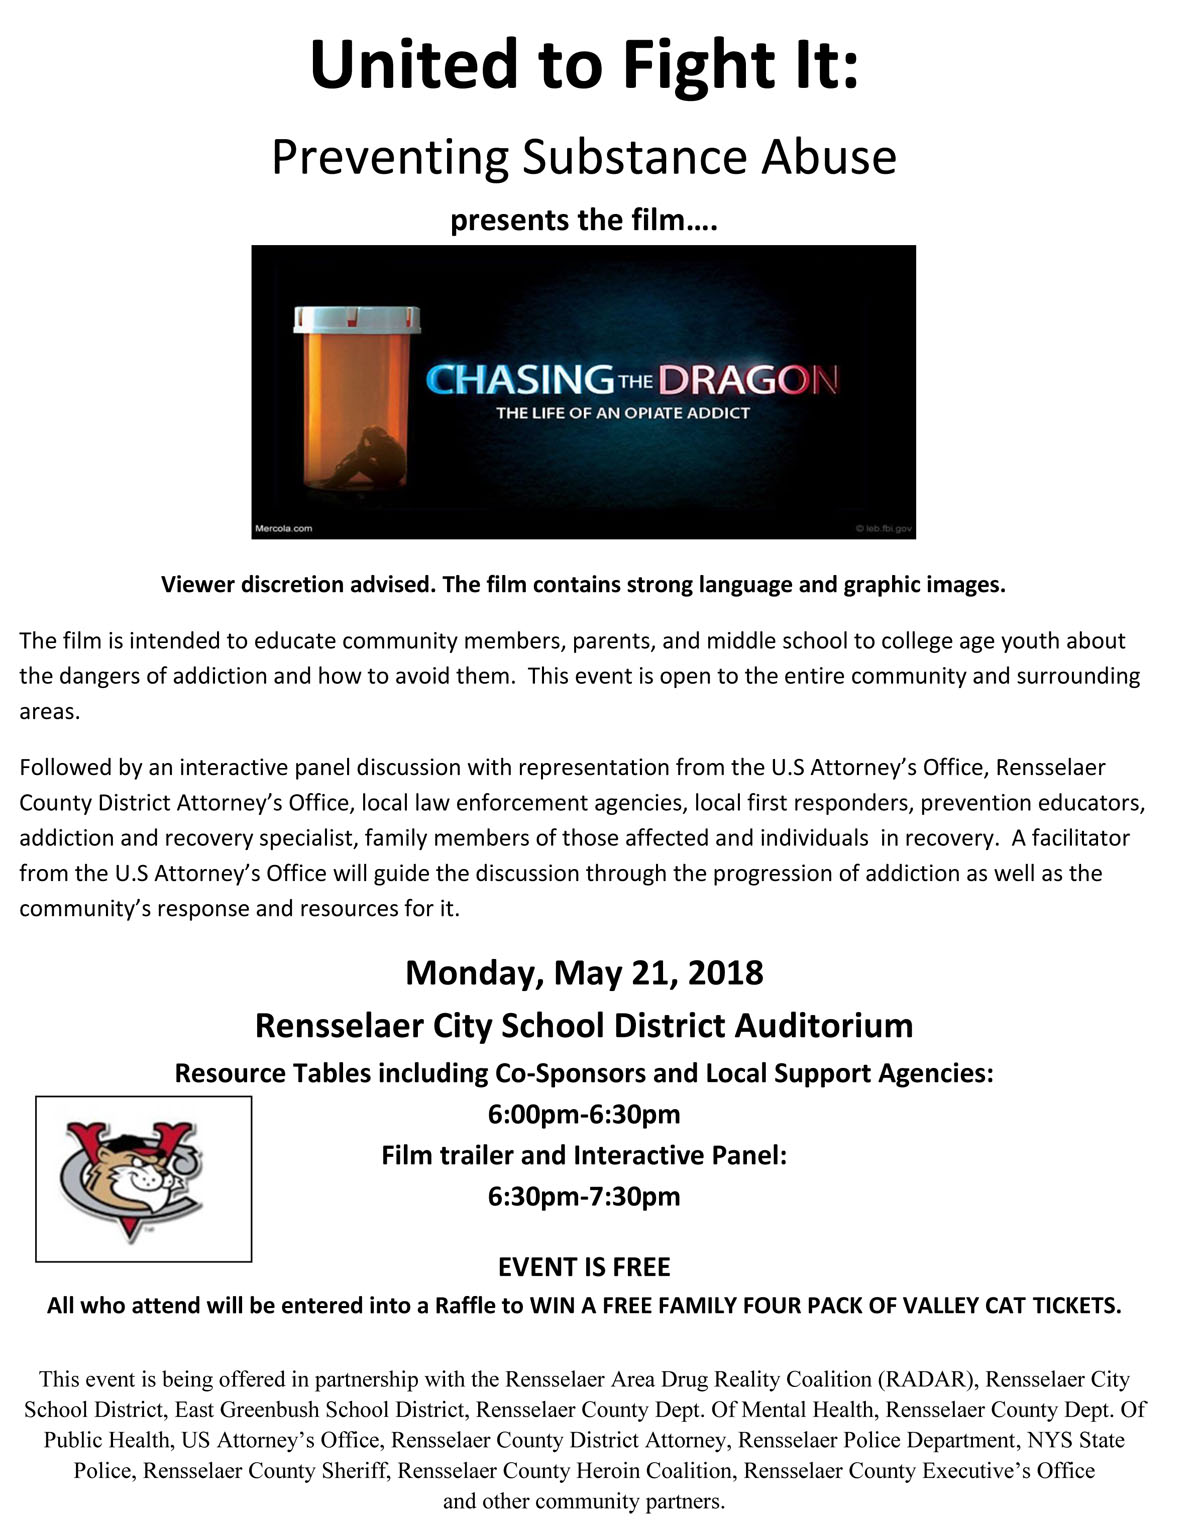 Chasing the Dragon Flyer May 21